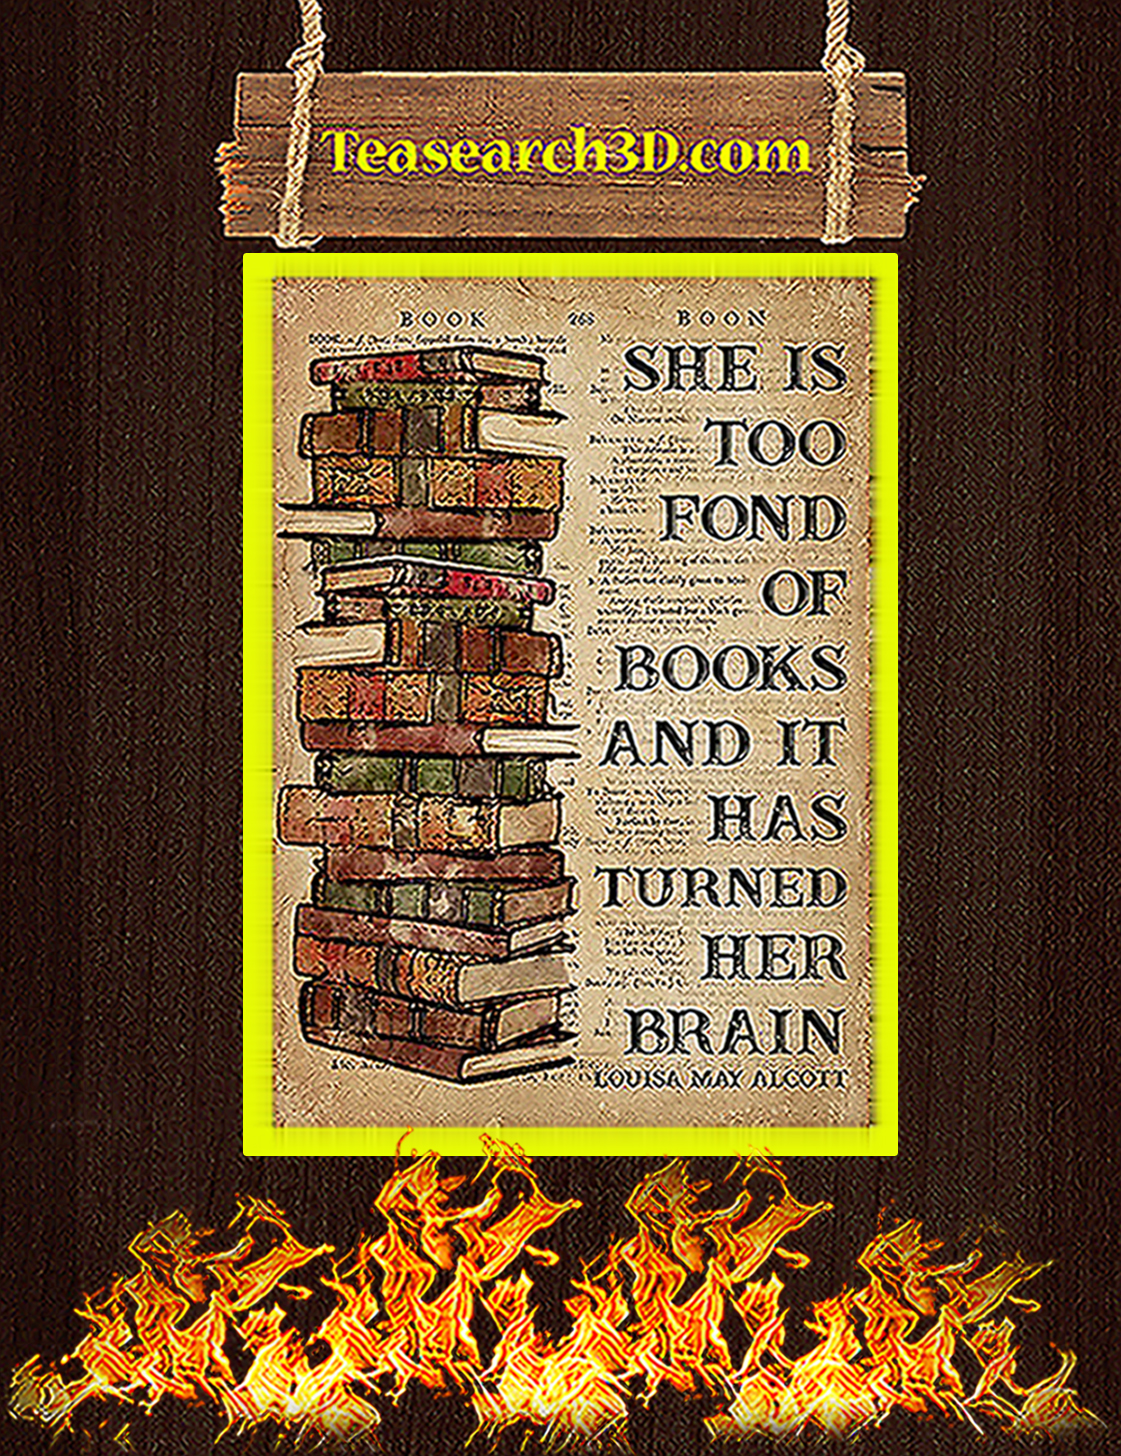 Book she is too fond of books poster A3